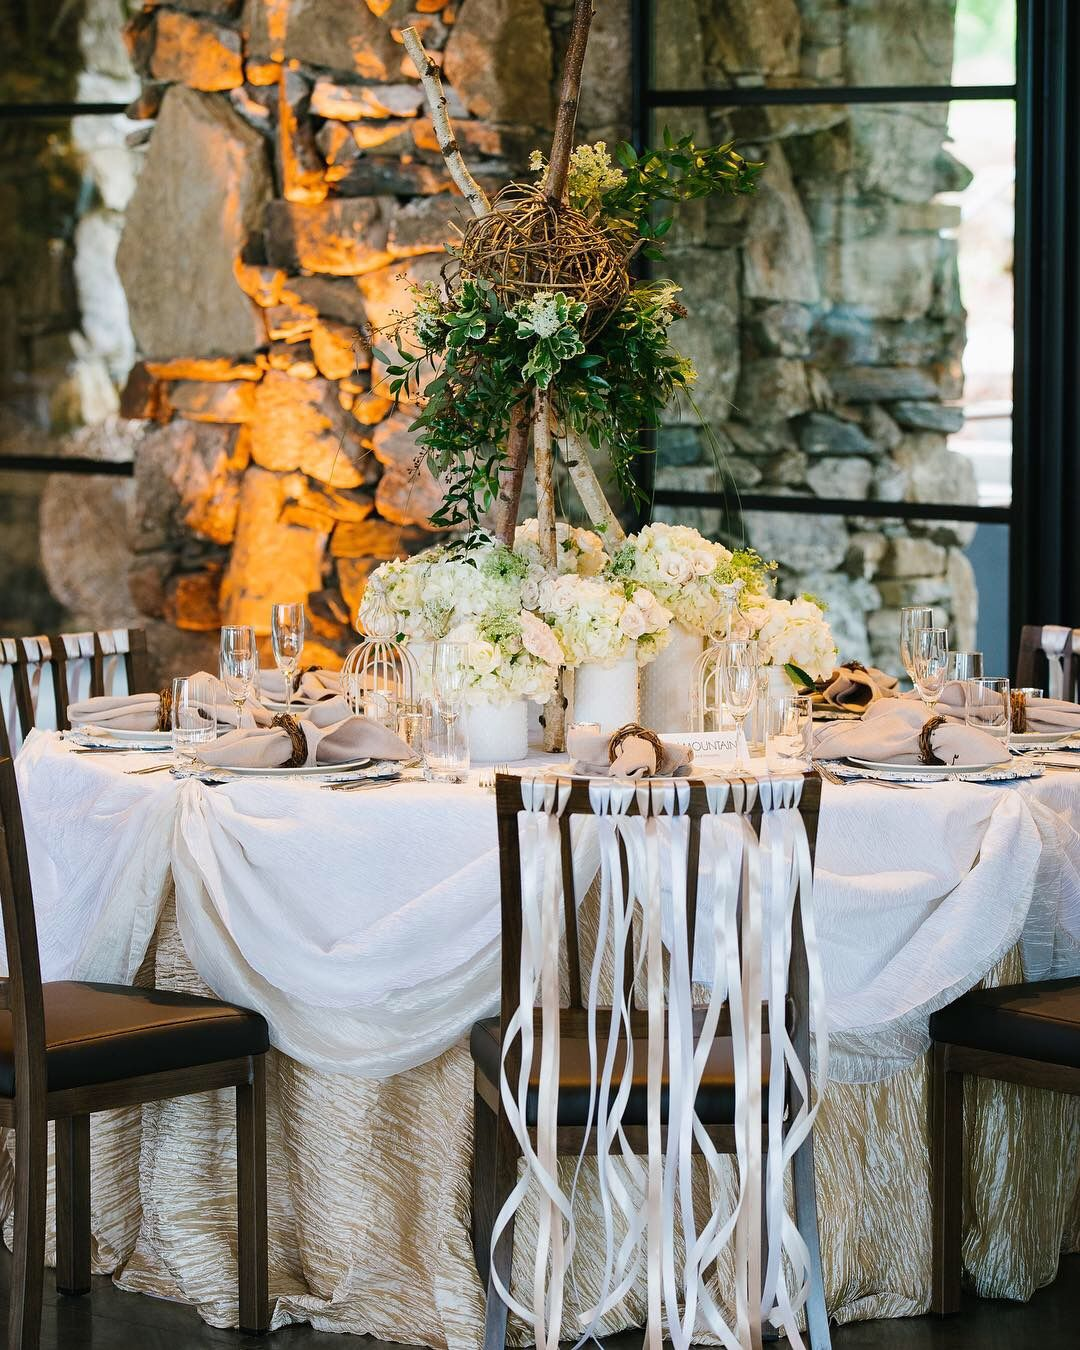 A Vintage Diy Rustic Wedding On A Ranch In California: Pin By Melissa Fehling Designs On Melissa Fehling Designs